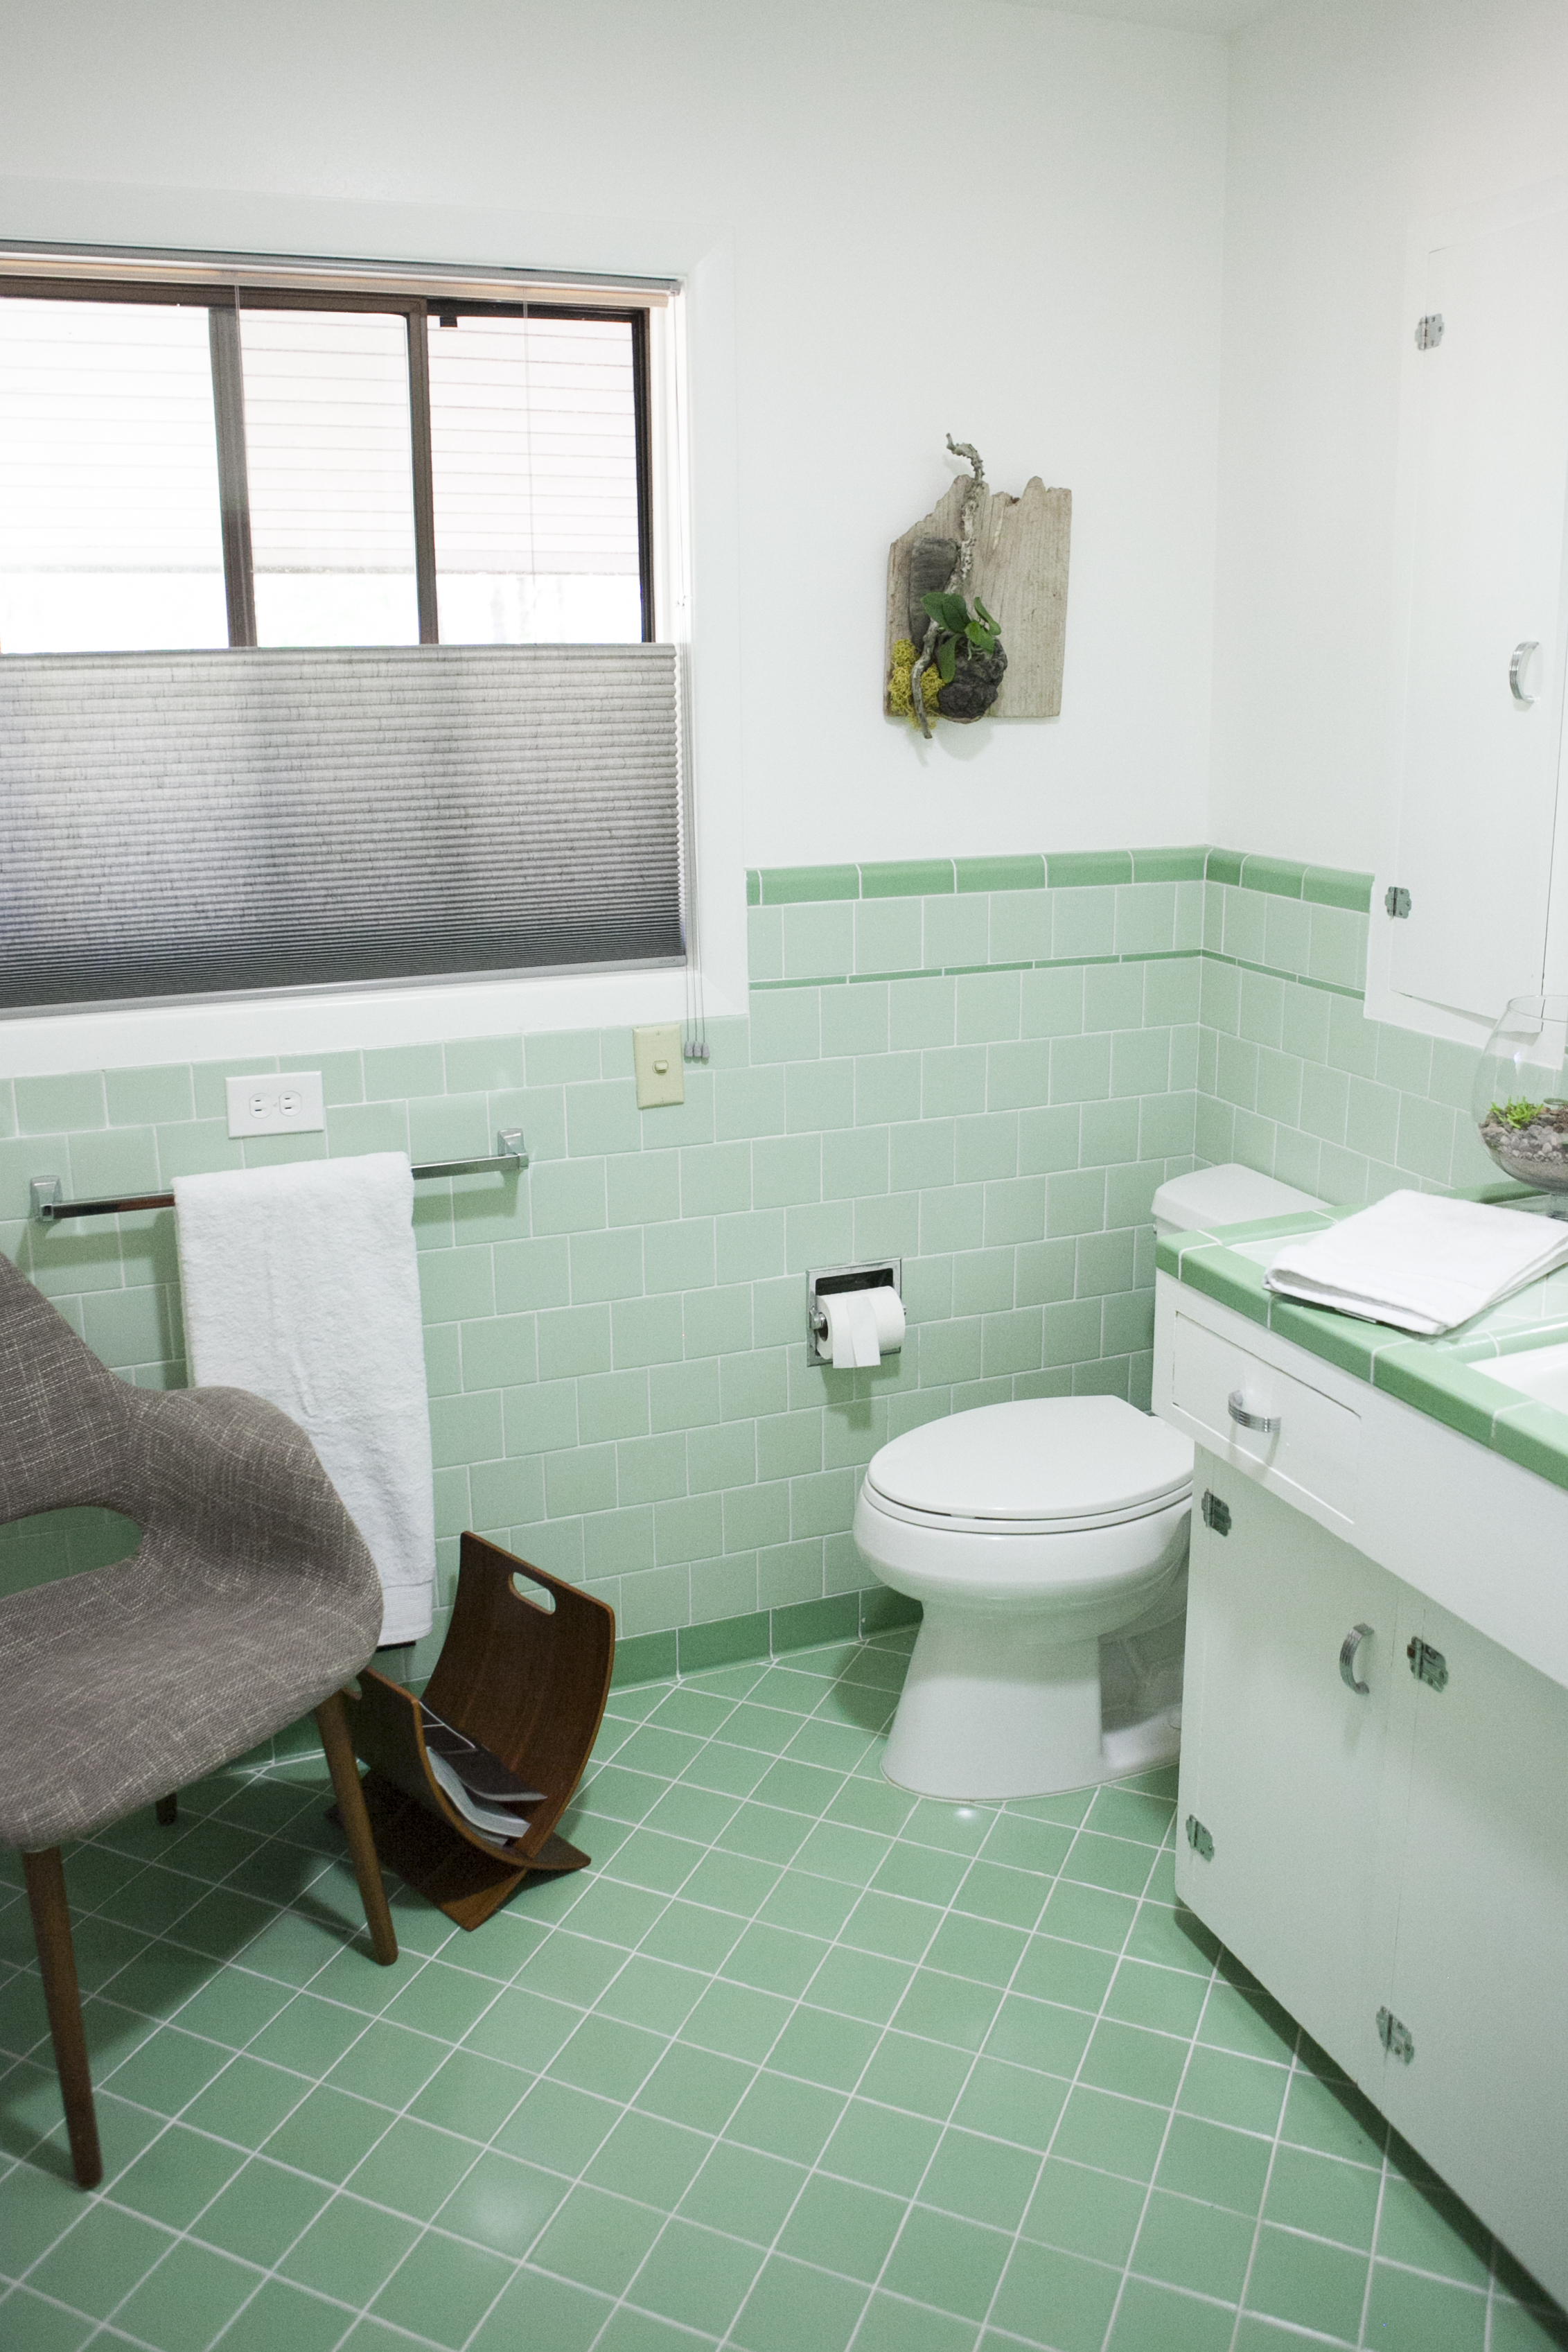 Awe Inspiring Inspiring Bathrooms With Vintage Tile Apartment Therapy Download Free Architecture Designs Itiscsunscenecom